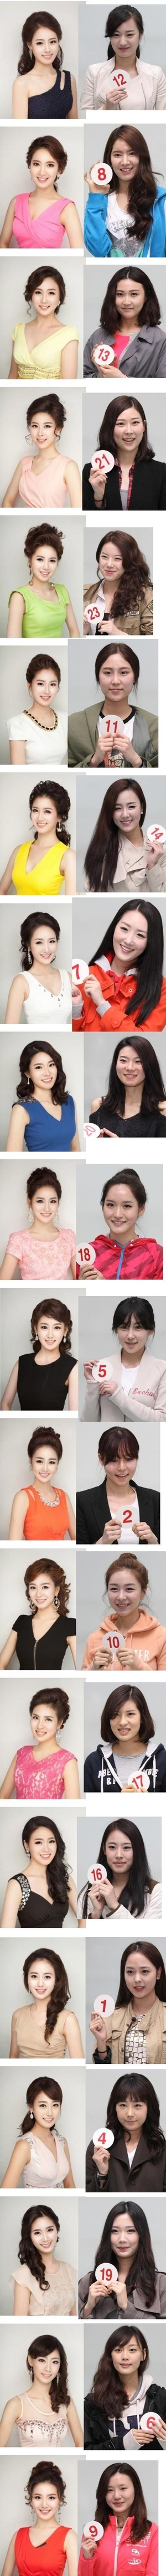 20 Contestants, 1 Face: Their Real Faces Revealed